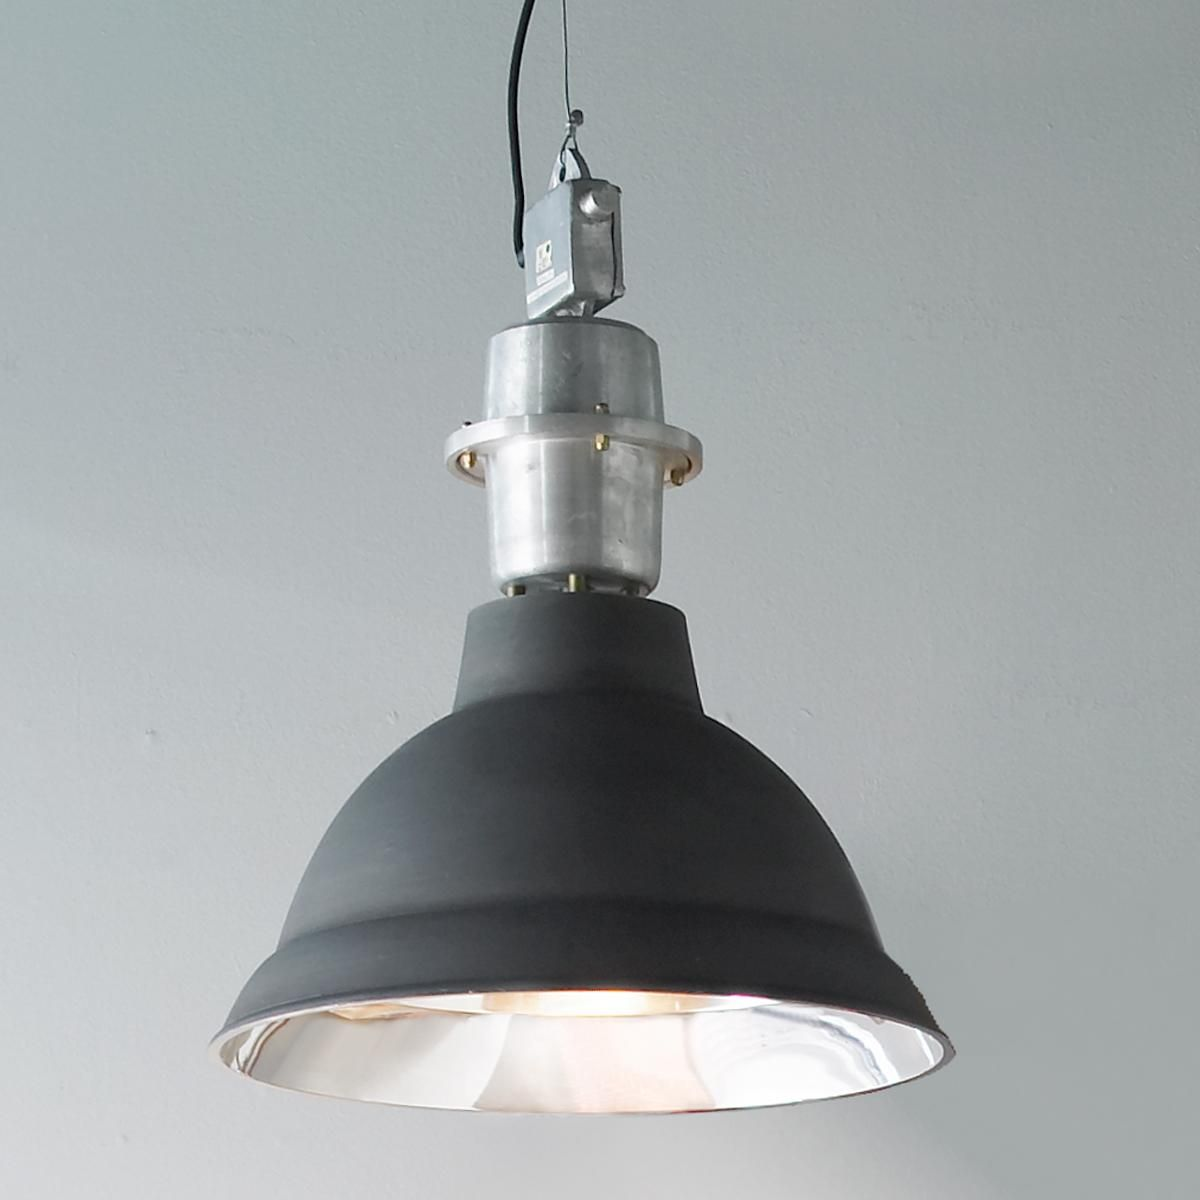 Large industrial warehouse pendant light pendant lighting large industrial warehouse pendant light aloadofball